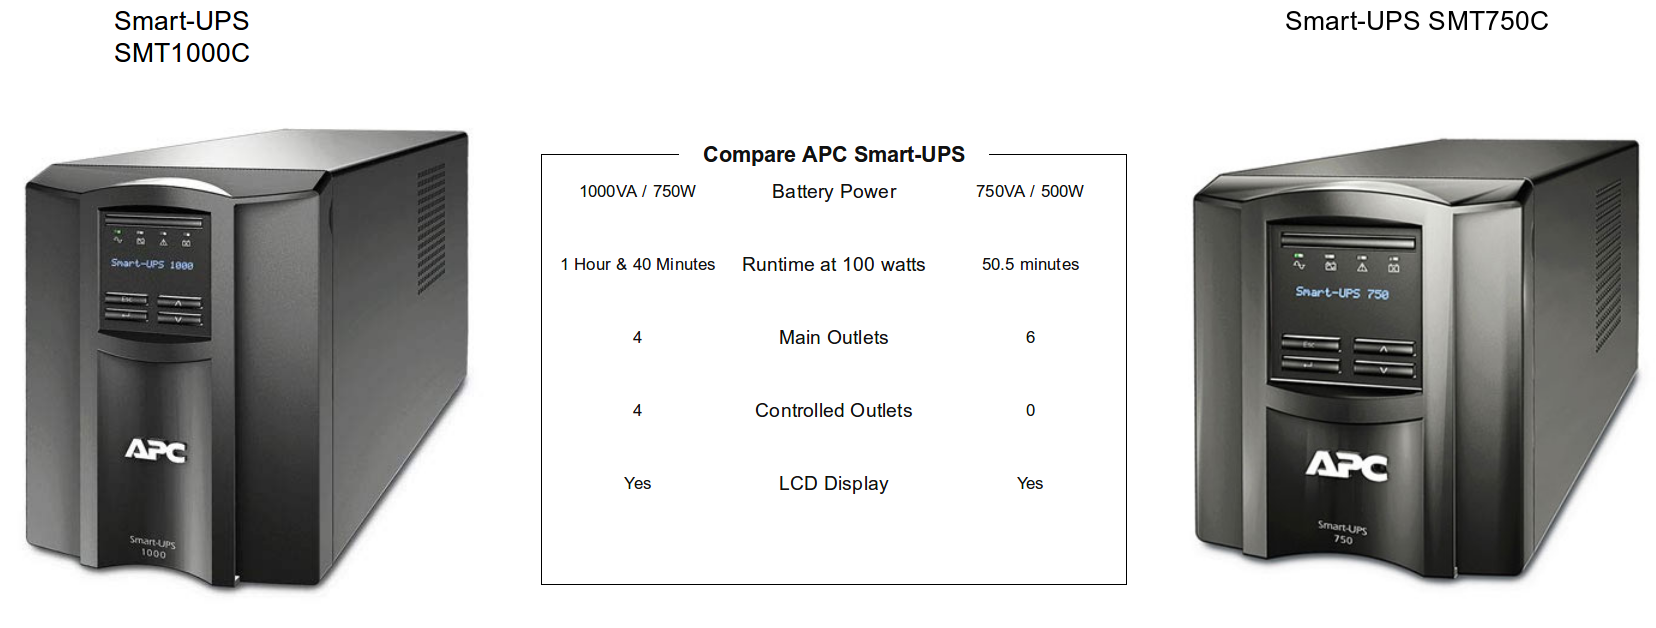 APC by Schneider Electric Smart-UPS 1500VA LCD 120V with SmartConnect -  1440 VA/1000 W - 120 V AC, 110 V AC, 127 V AC - 7 Minute Stand-by Time -  Tower